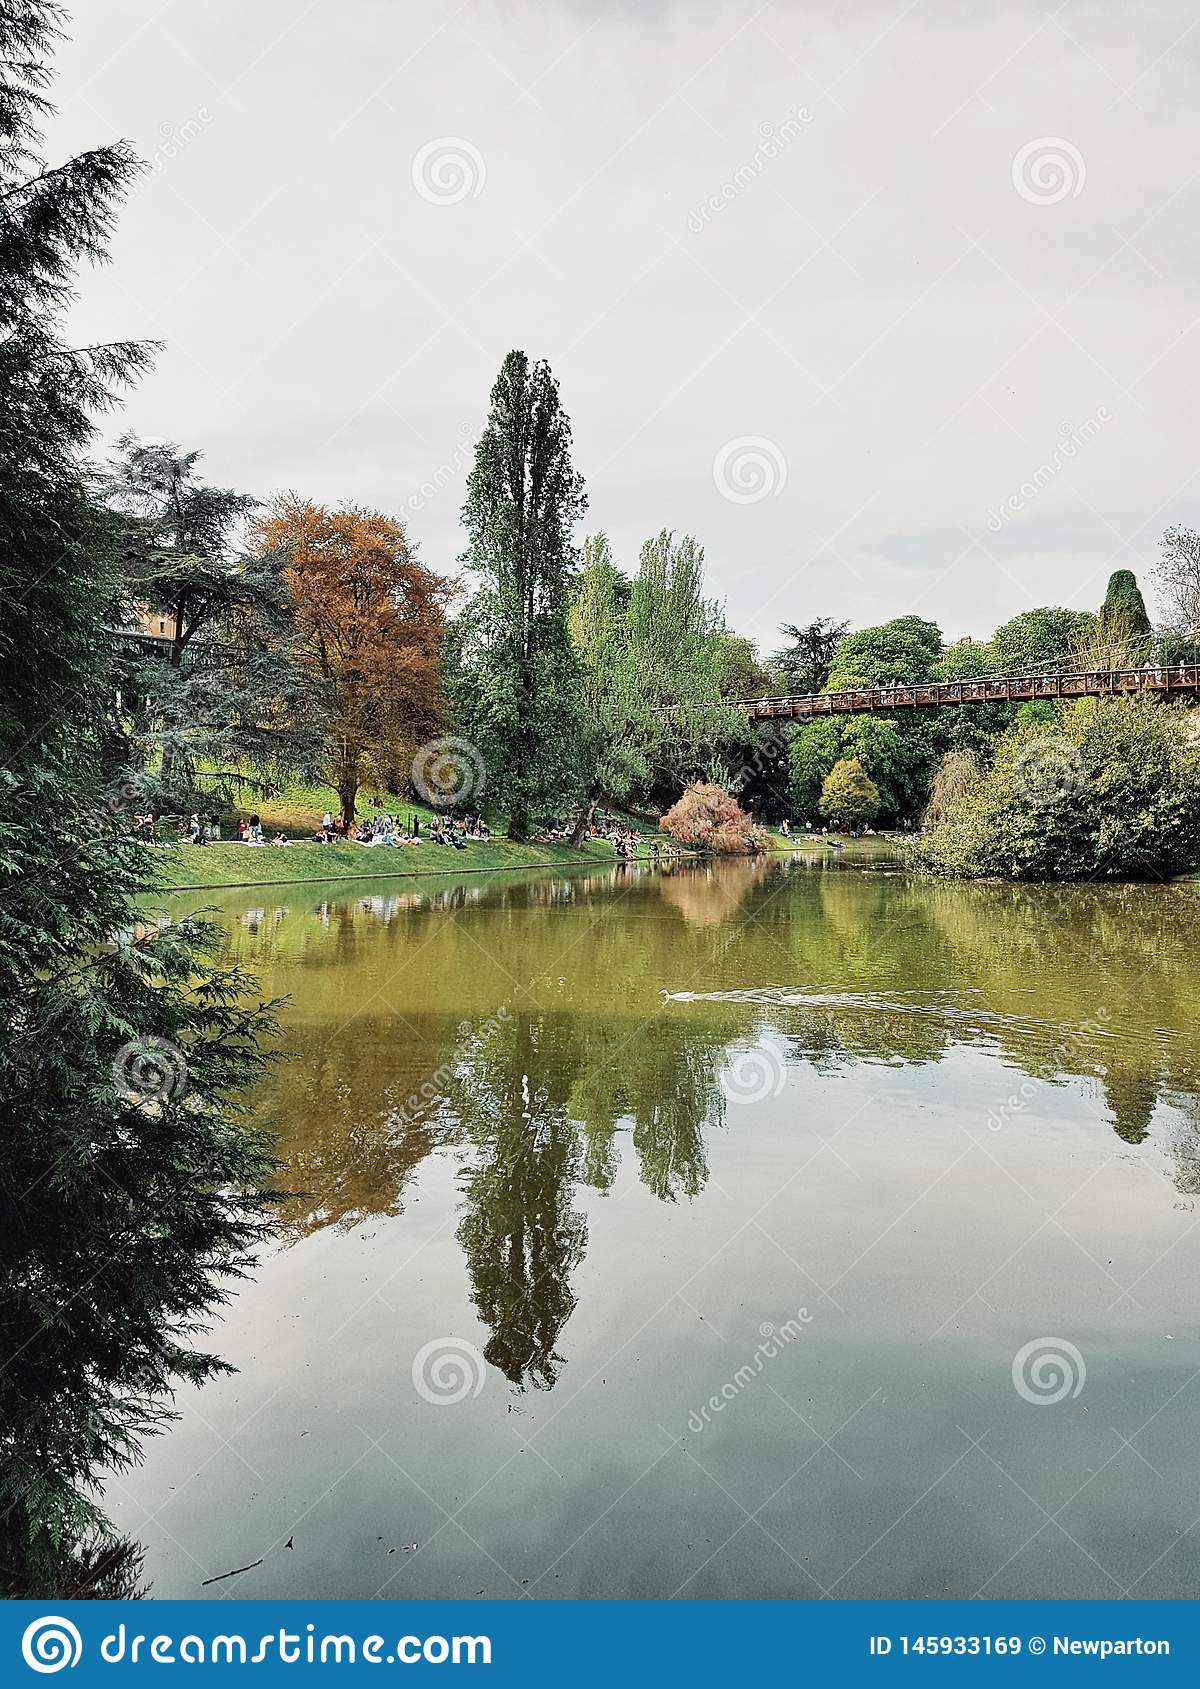 The Buttes Chaumont park, the most important green space in the north of Paris, France